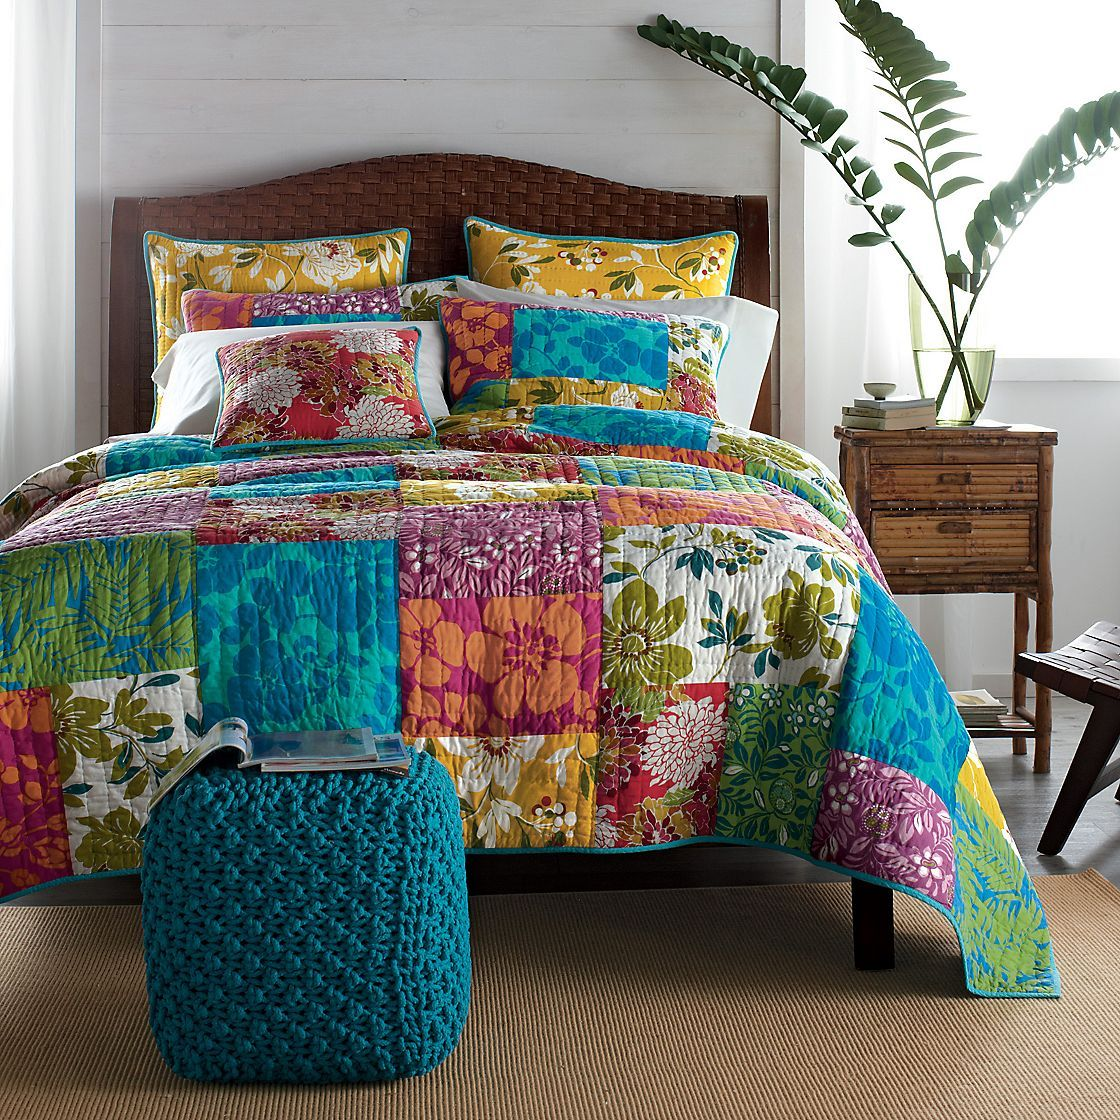 Patchwork bed sheets patterns - Rio Quilt The Liveliest Way To Wake Up Your Bed For The Summer Months